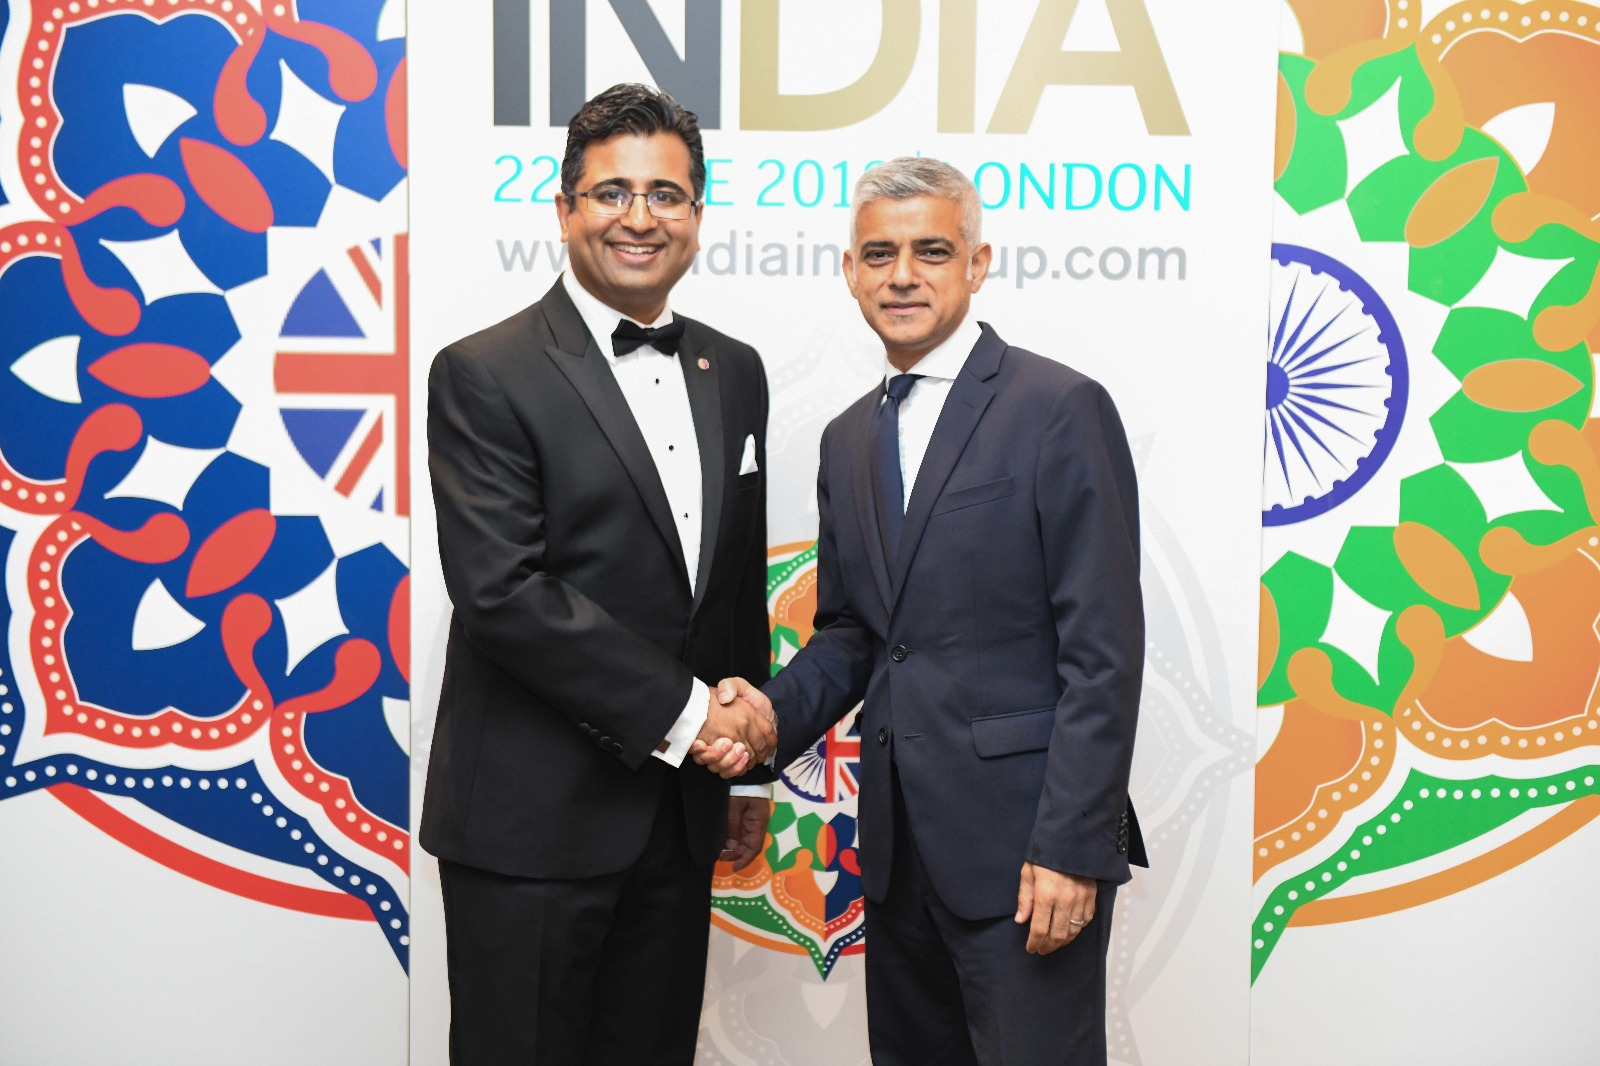 India Inc CEO Manoj Ladwa (left) with London Mayor Sadiq Khan at the 2018 UK-India Awards. Photo courtesy: India inc